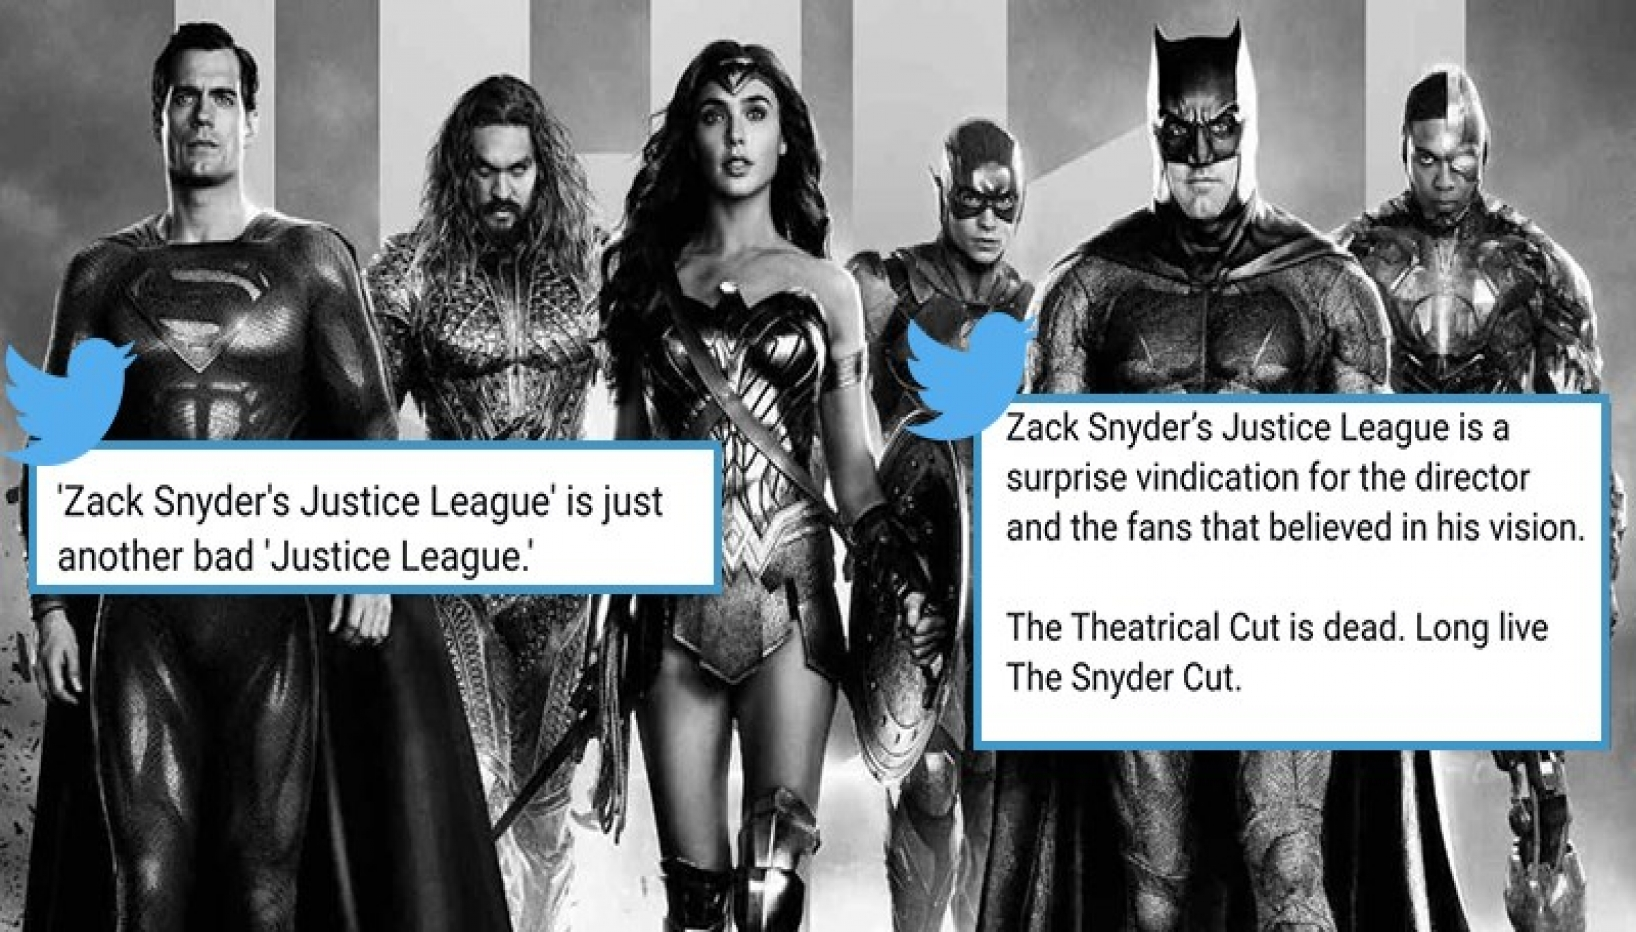 Snyder's Justice League Release This Week; Here Are A Few Tweets To Help You Decide If You Should Watch The 4-Hour Long Movie